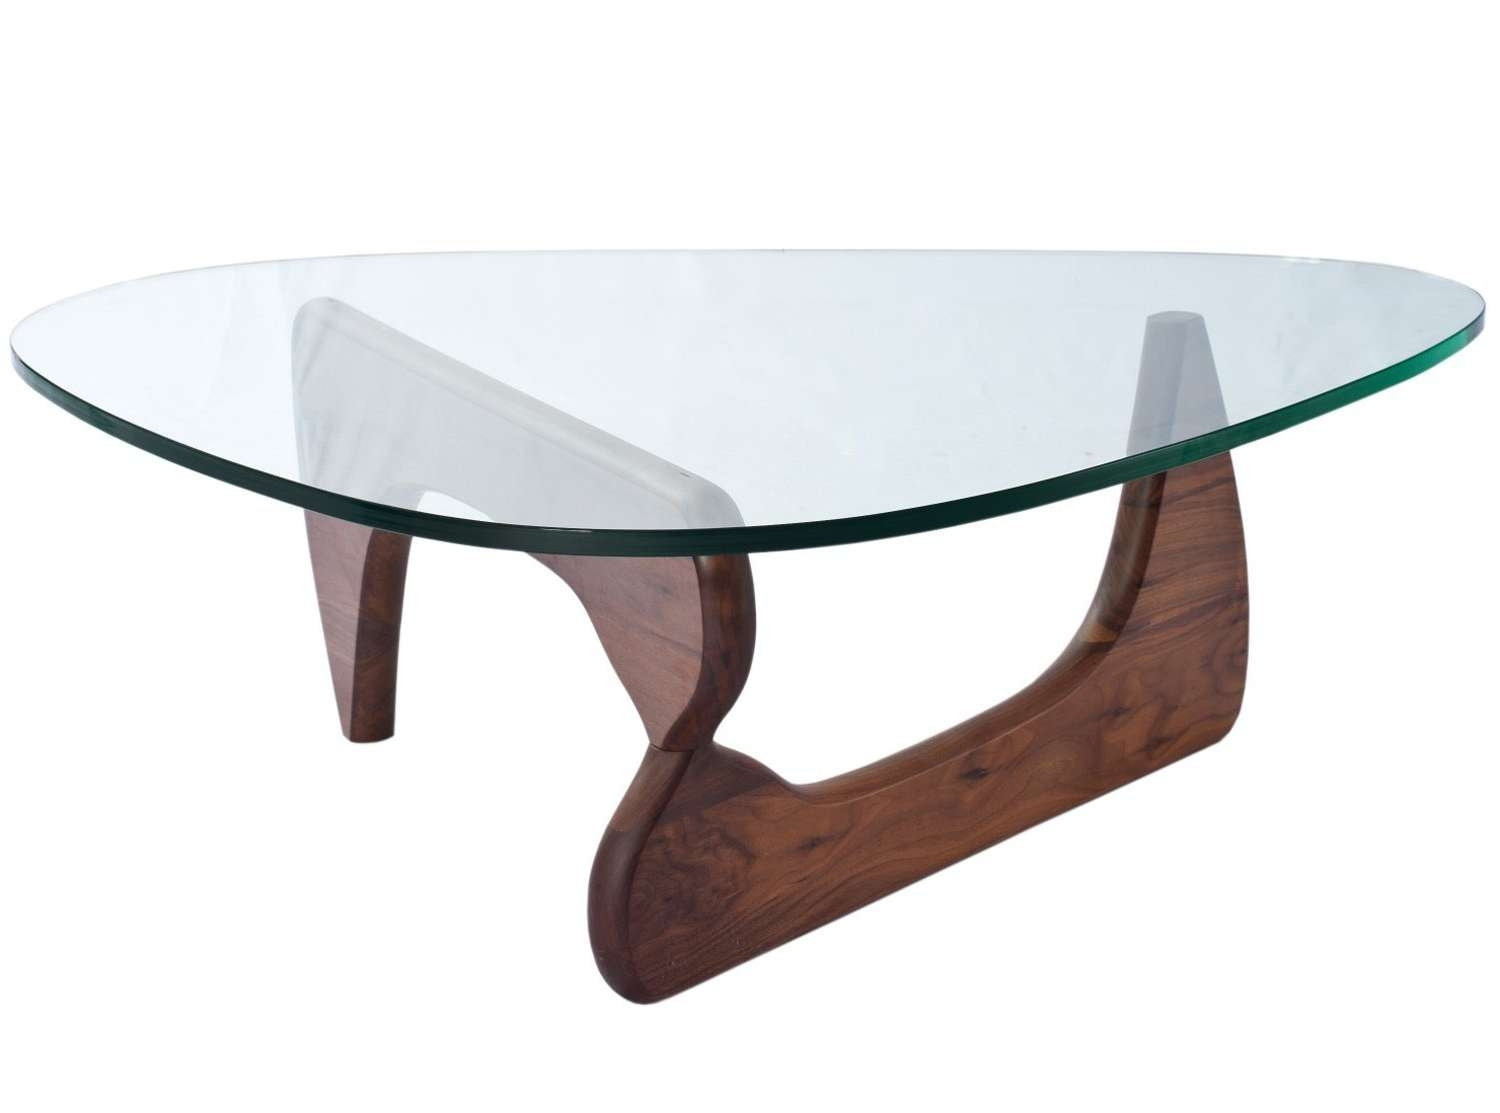 Newest Noguchi Coffee Tables Within Noguchi Coffee Table – 19mm Glass (platinum Replica) (View 4 of 20)